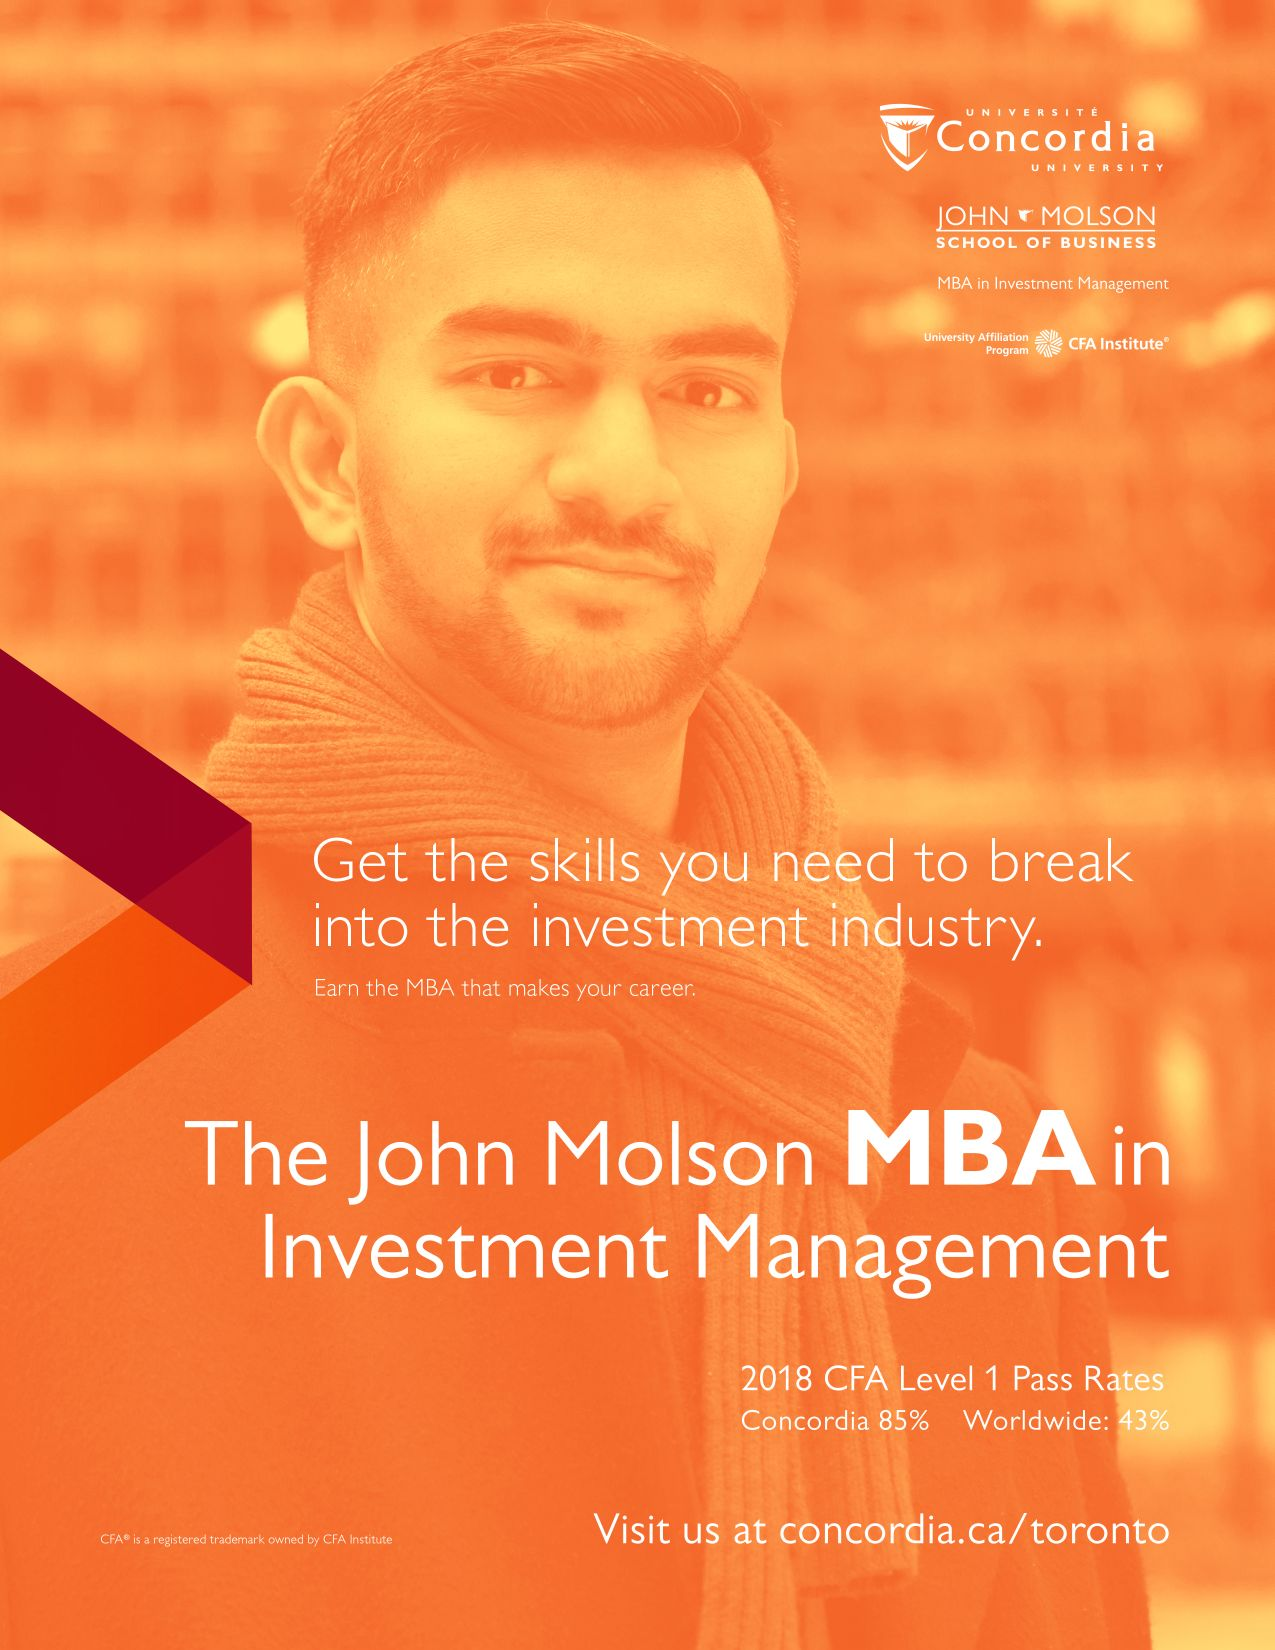 Concordia University John Molson School of Business The Scoop Advertisement